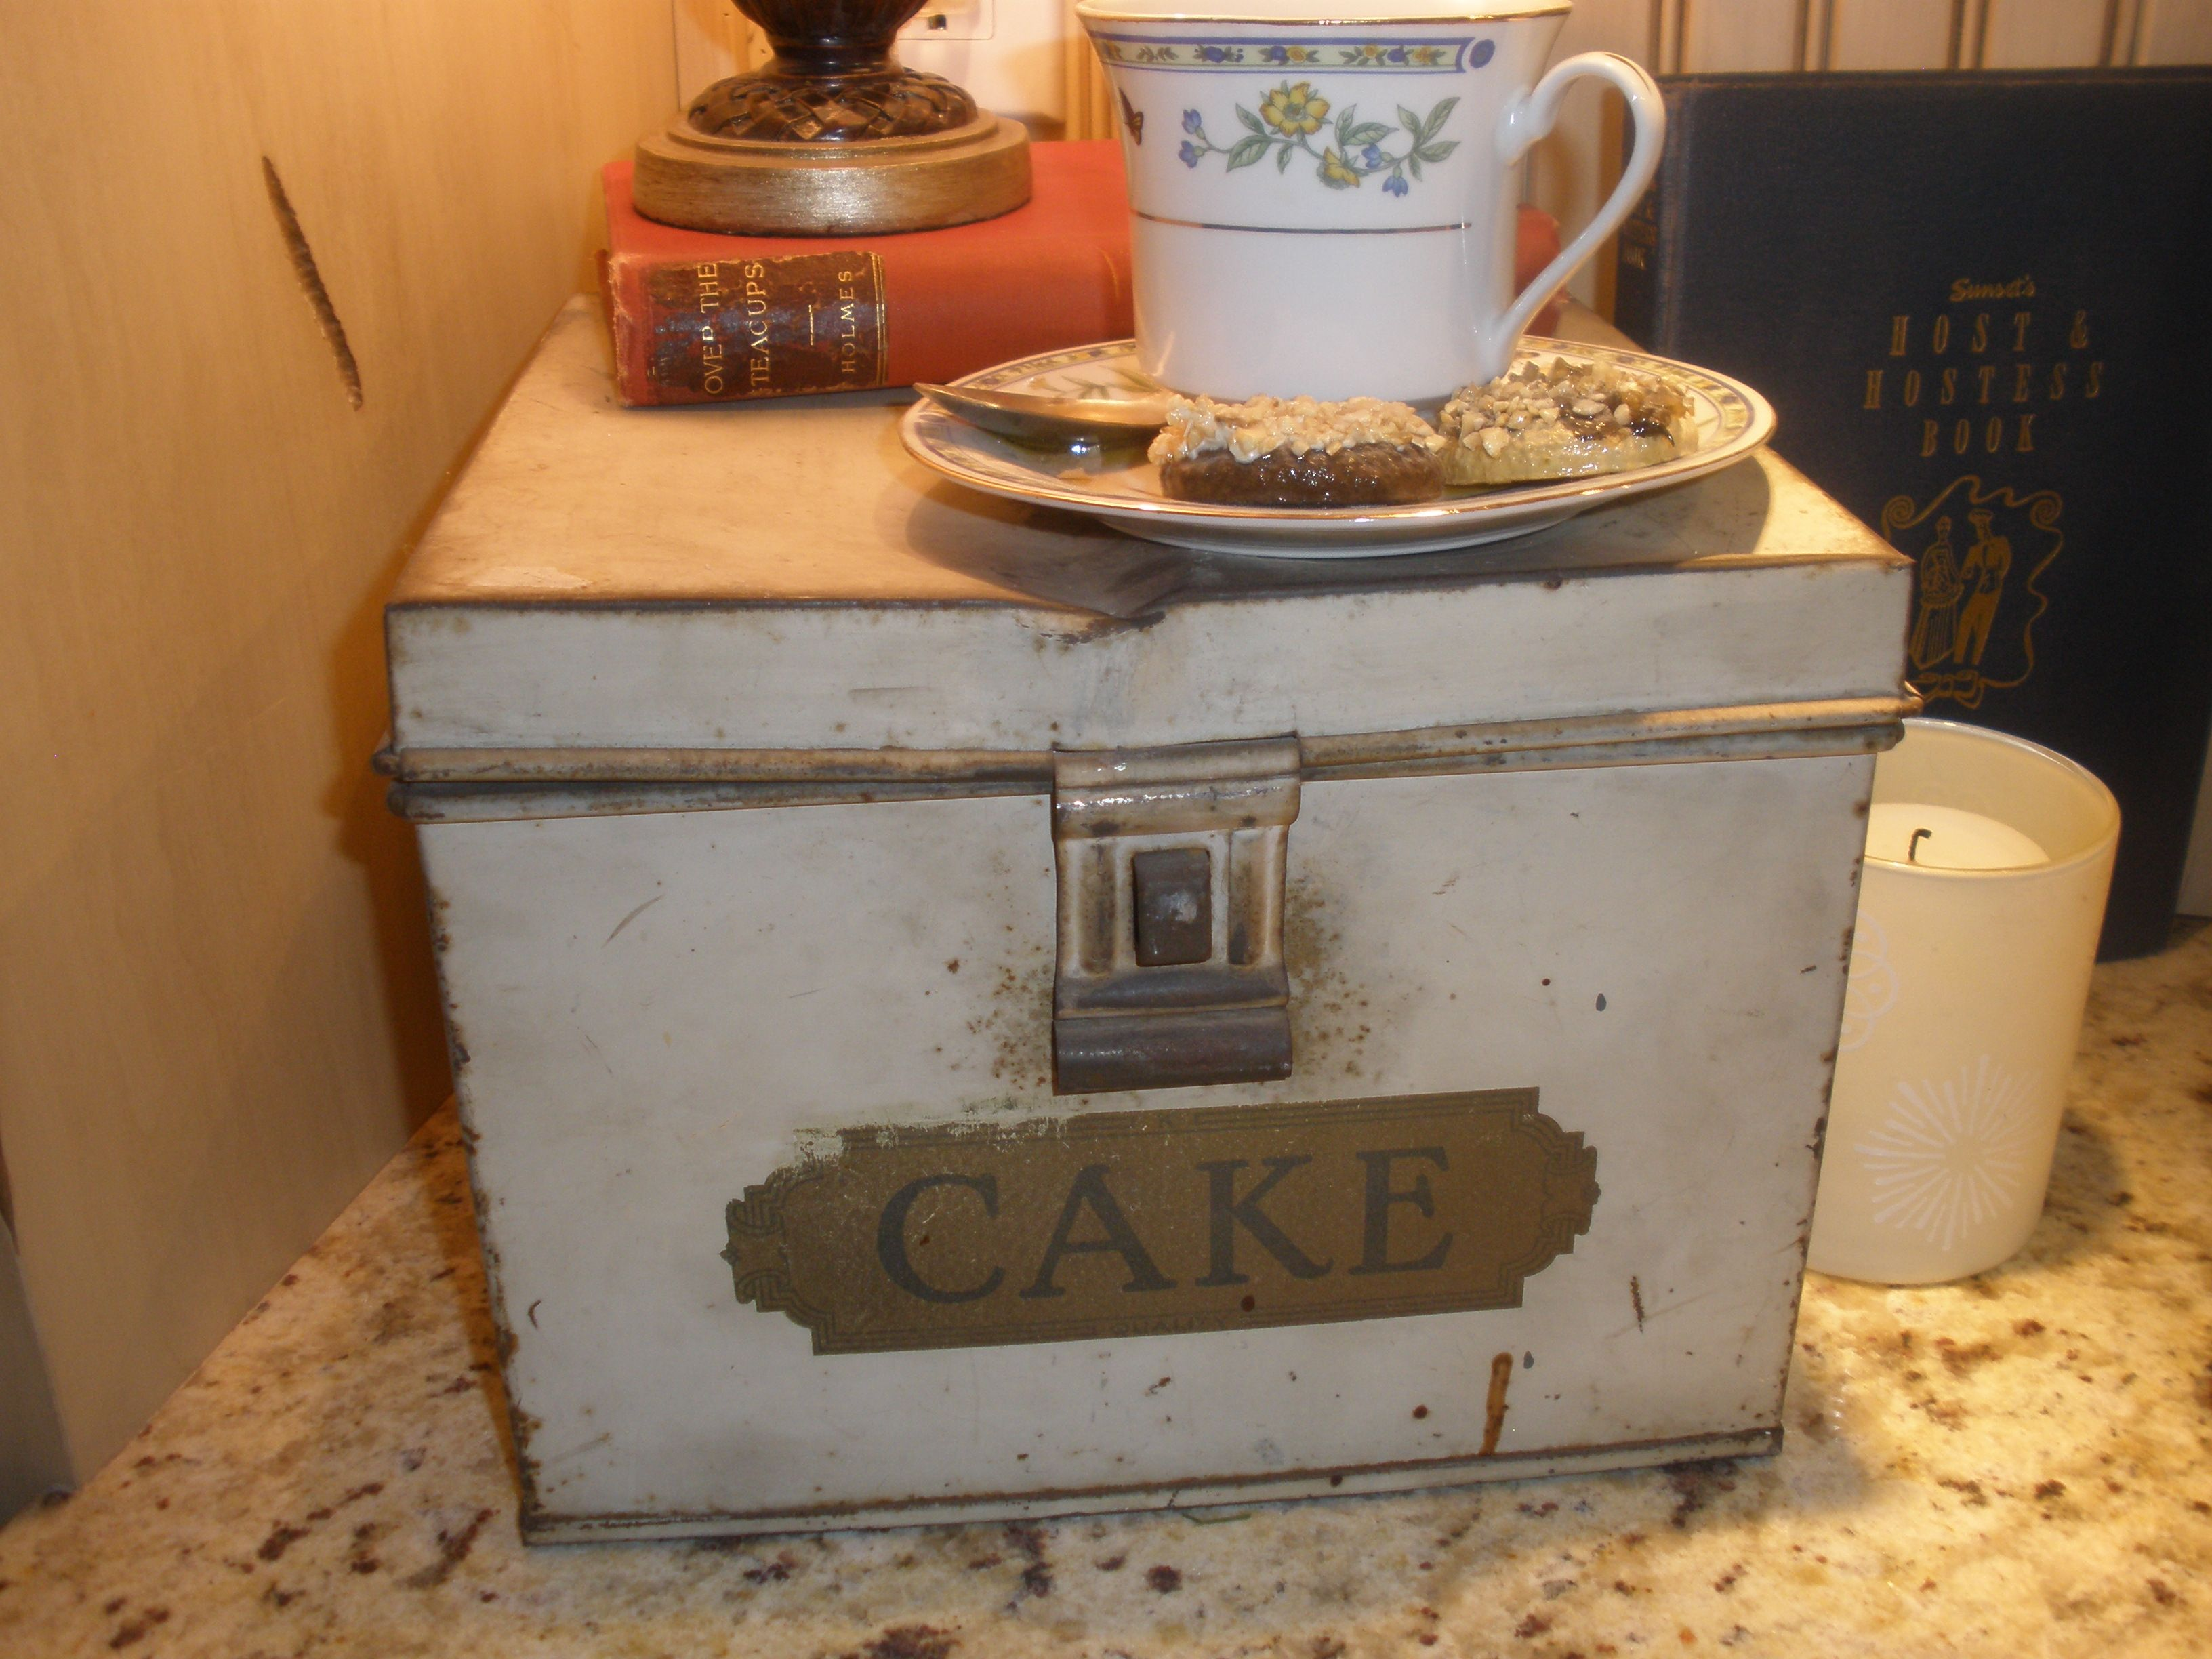 I love this antique cake tin - found in Erie, PA on vacation - we always bring home something for the house from vacation for a memory instead of a t-shirt!